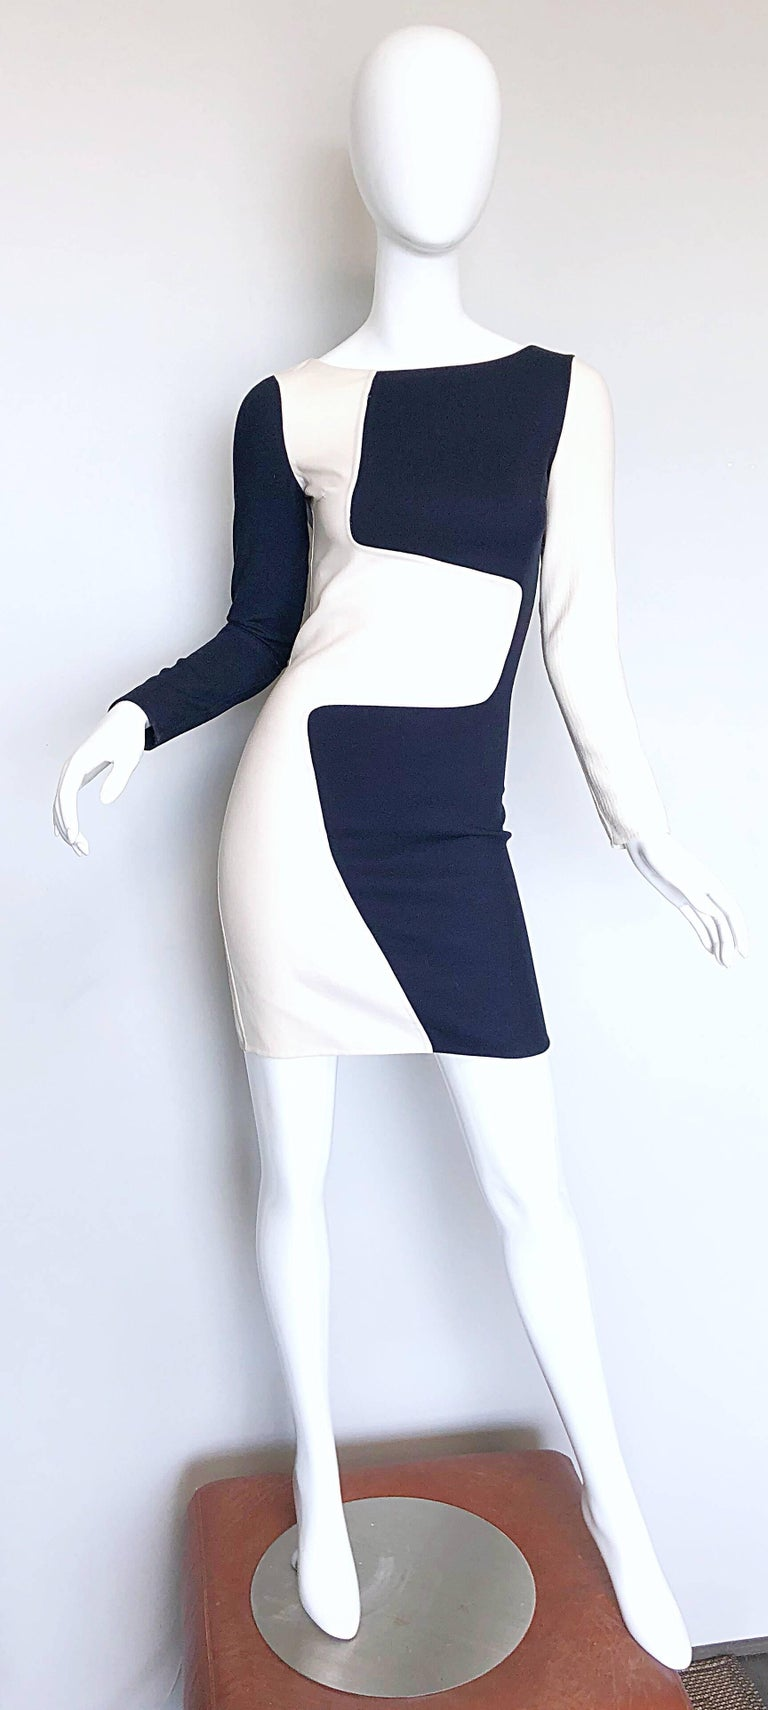 Flattering MICHAEL KORS COLLECTION Spring / Summer 2013 navy blue and white color block ' puzzle ' 1960s / 60s style runway dress! Signature double faced virgin wool stretches to fit. Any MK fan knows that the designer really knows how to accentuate